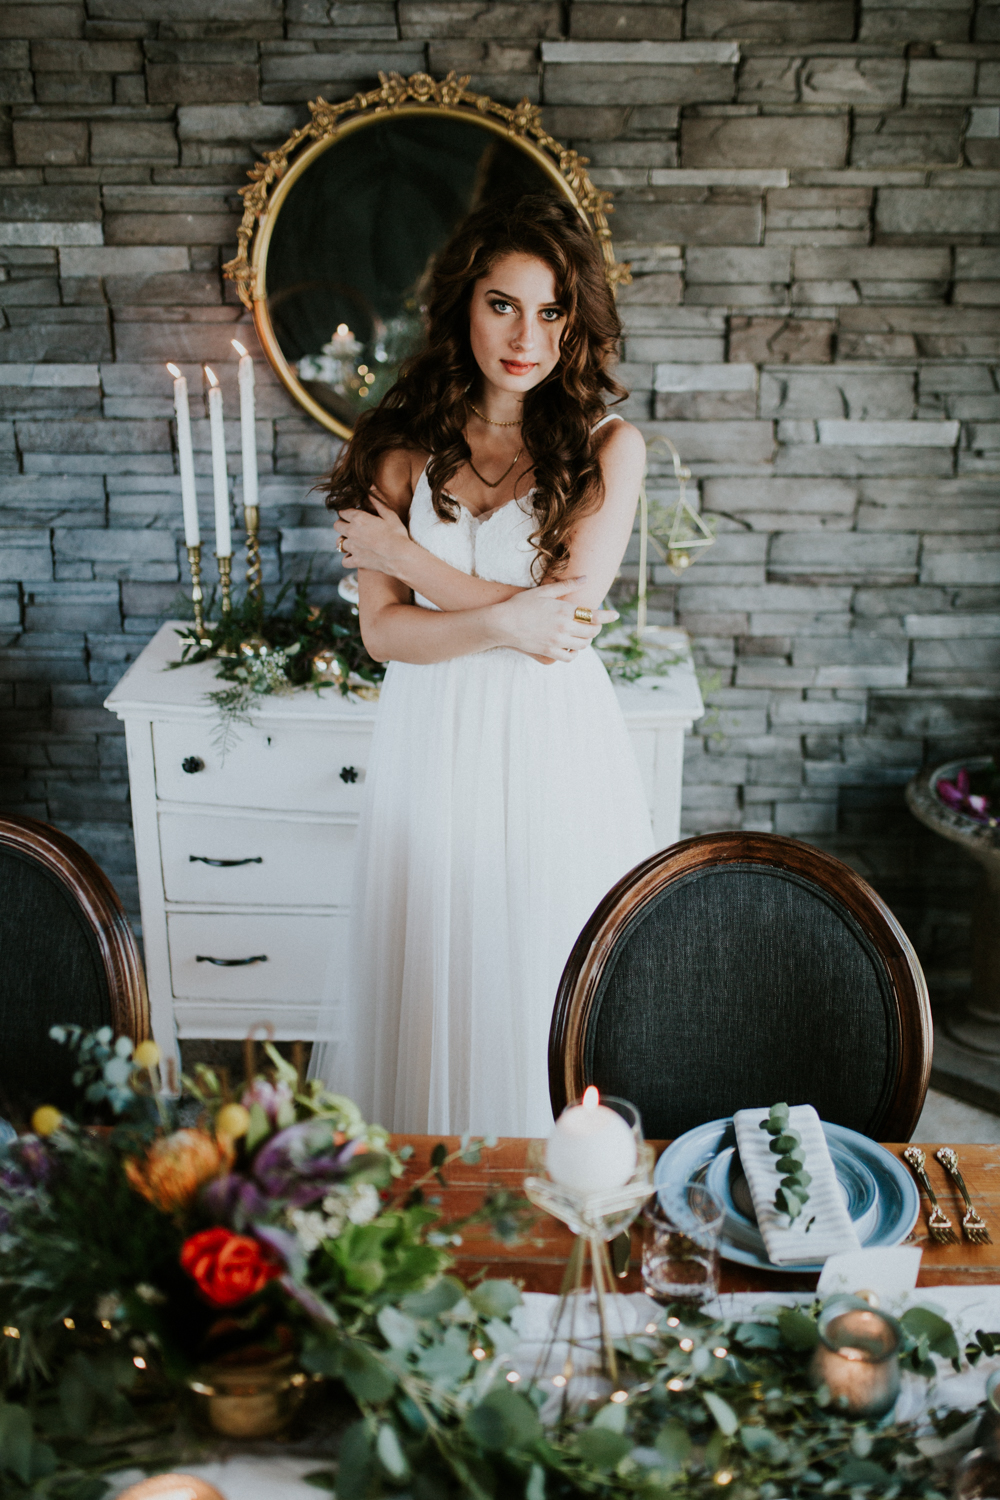 styled-colourful-wedding-photoshoot-bride-bhldn-floral-design-alberta-portrait-18.jpg